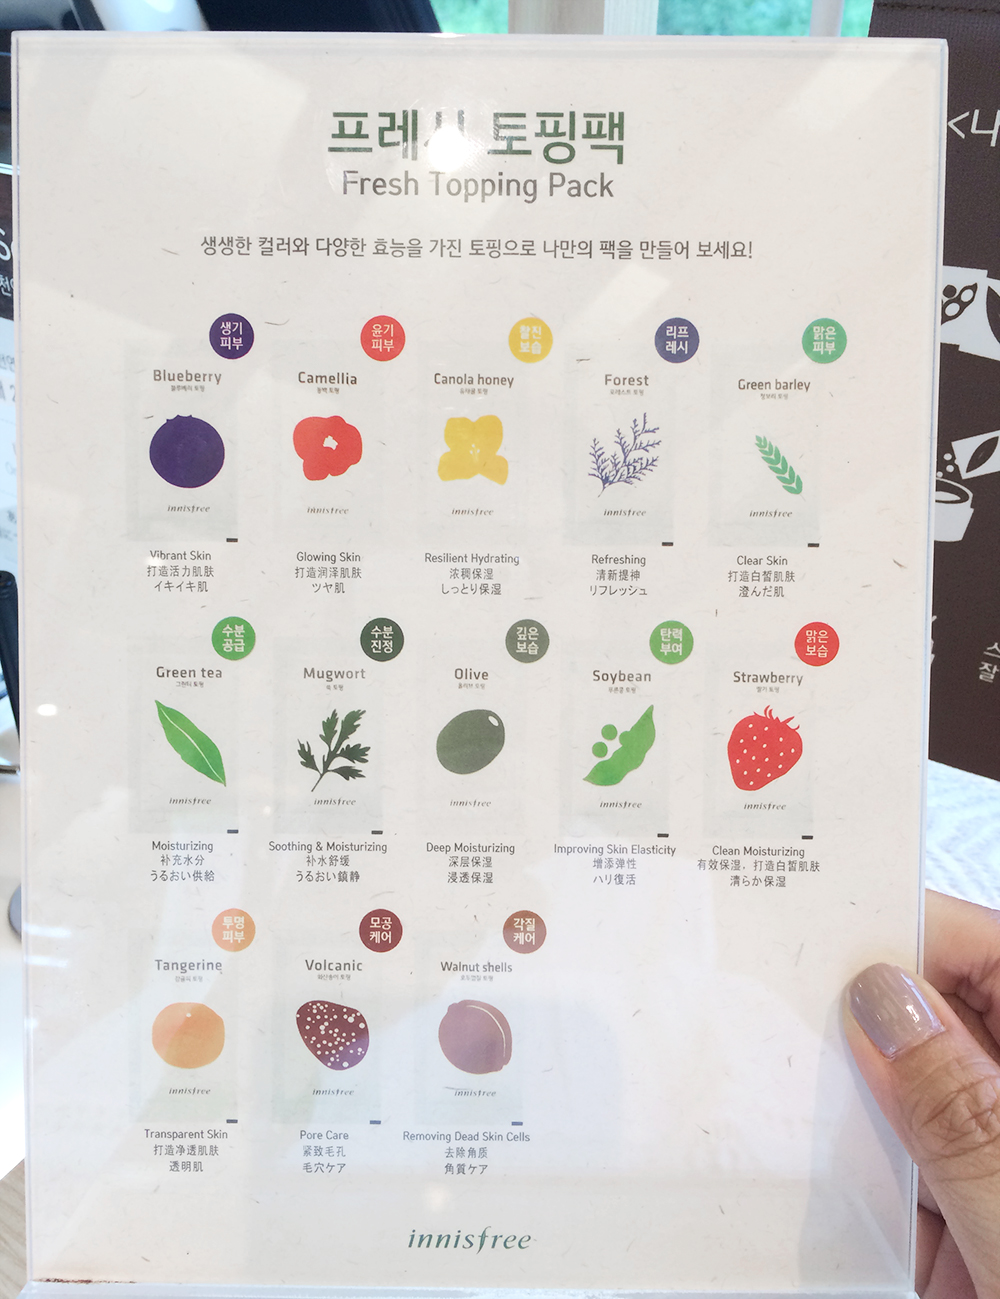 Innisfree Jeju House Fresh Topping Pack Ingredient Benefits